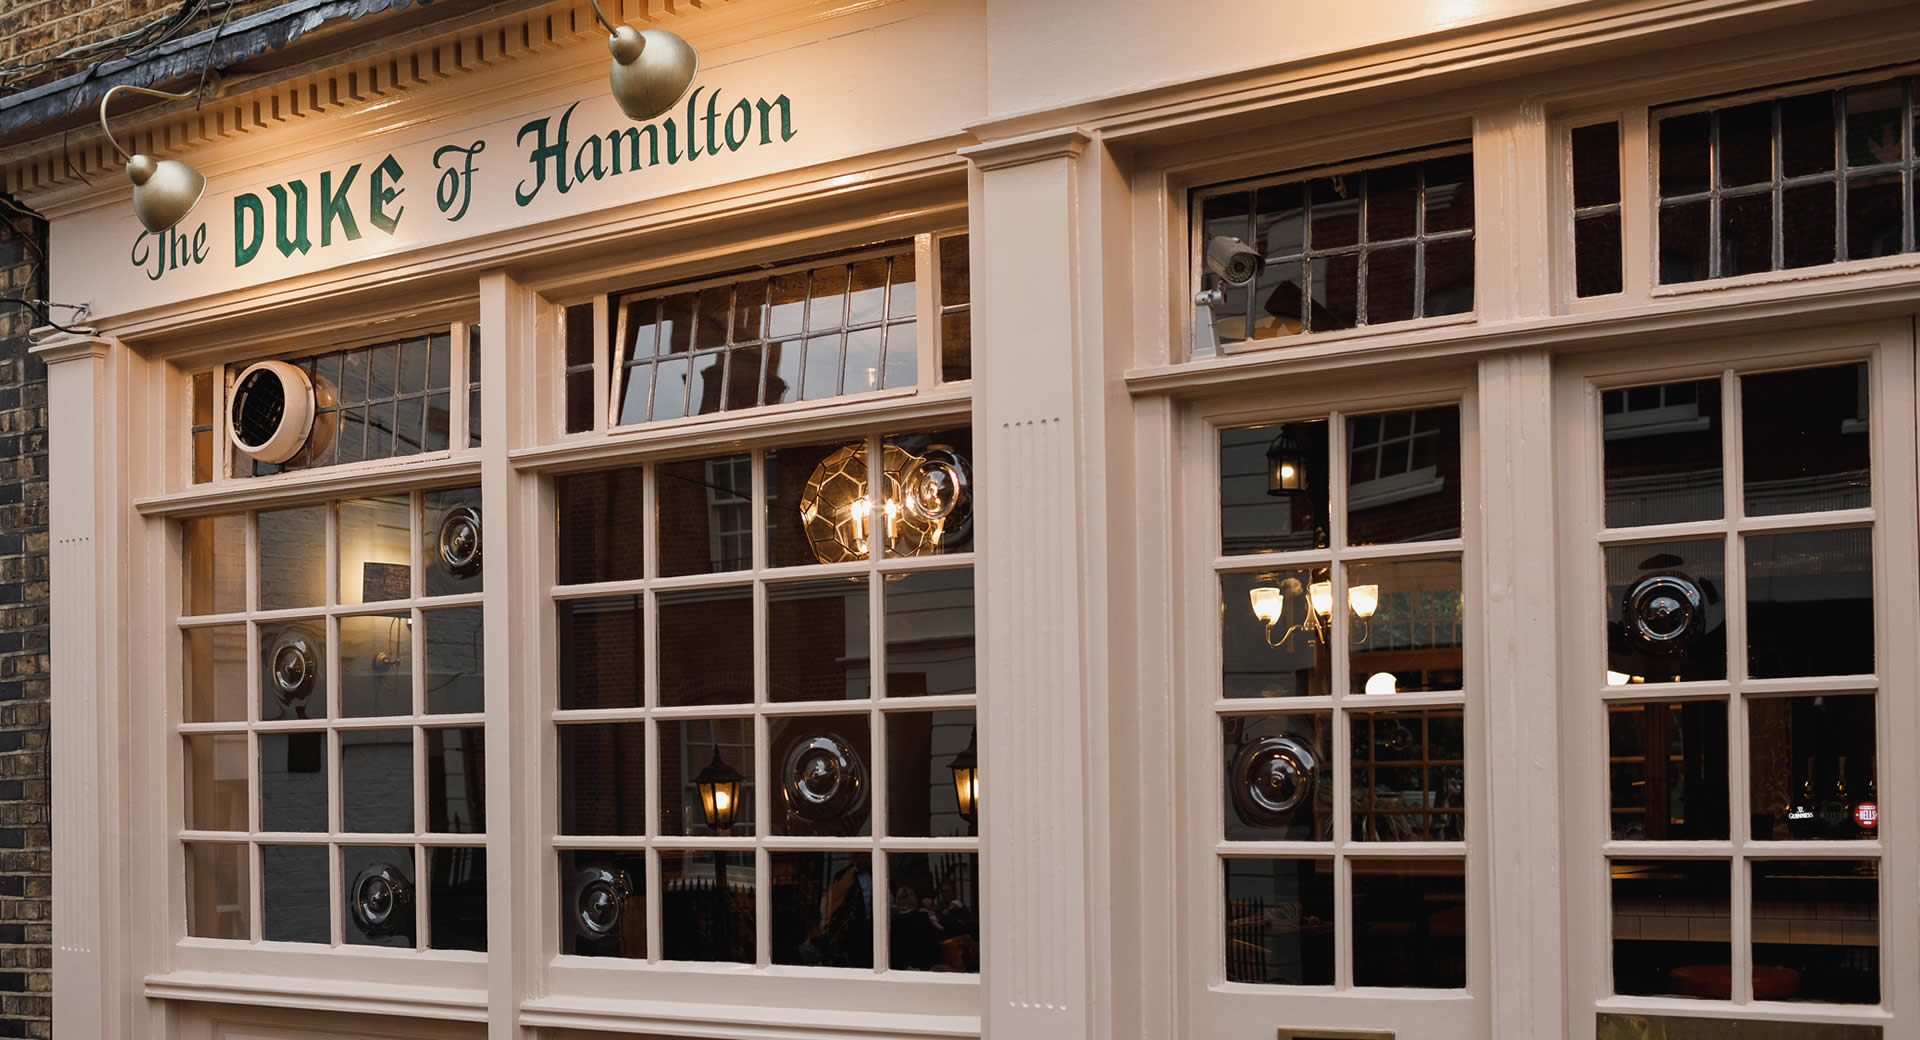 Discover the Duke of Hamilton